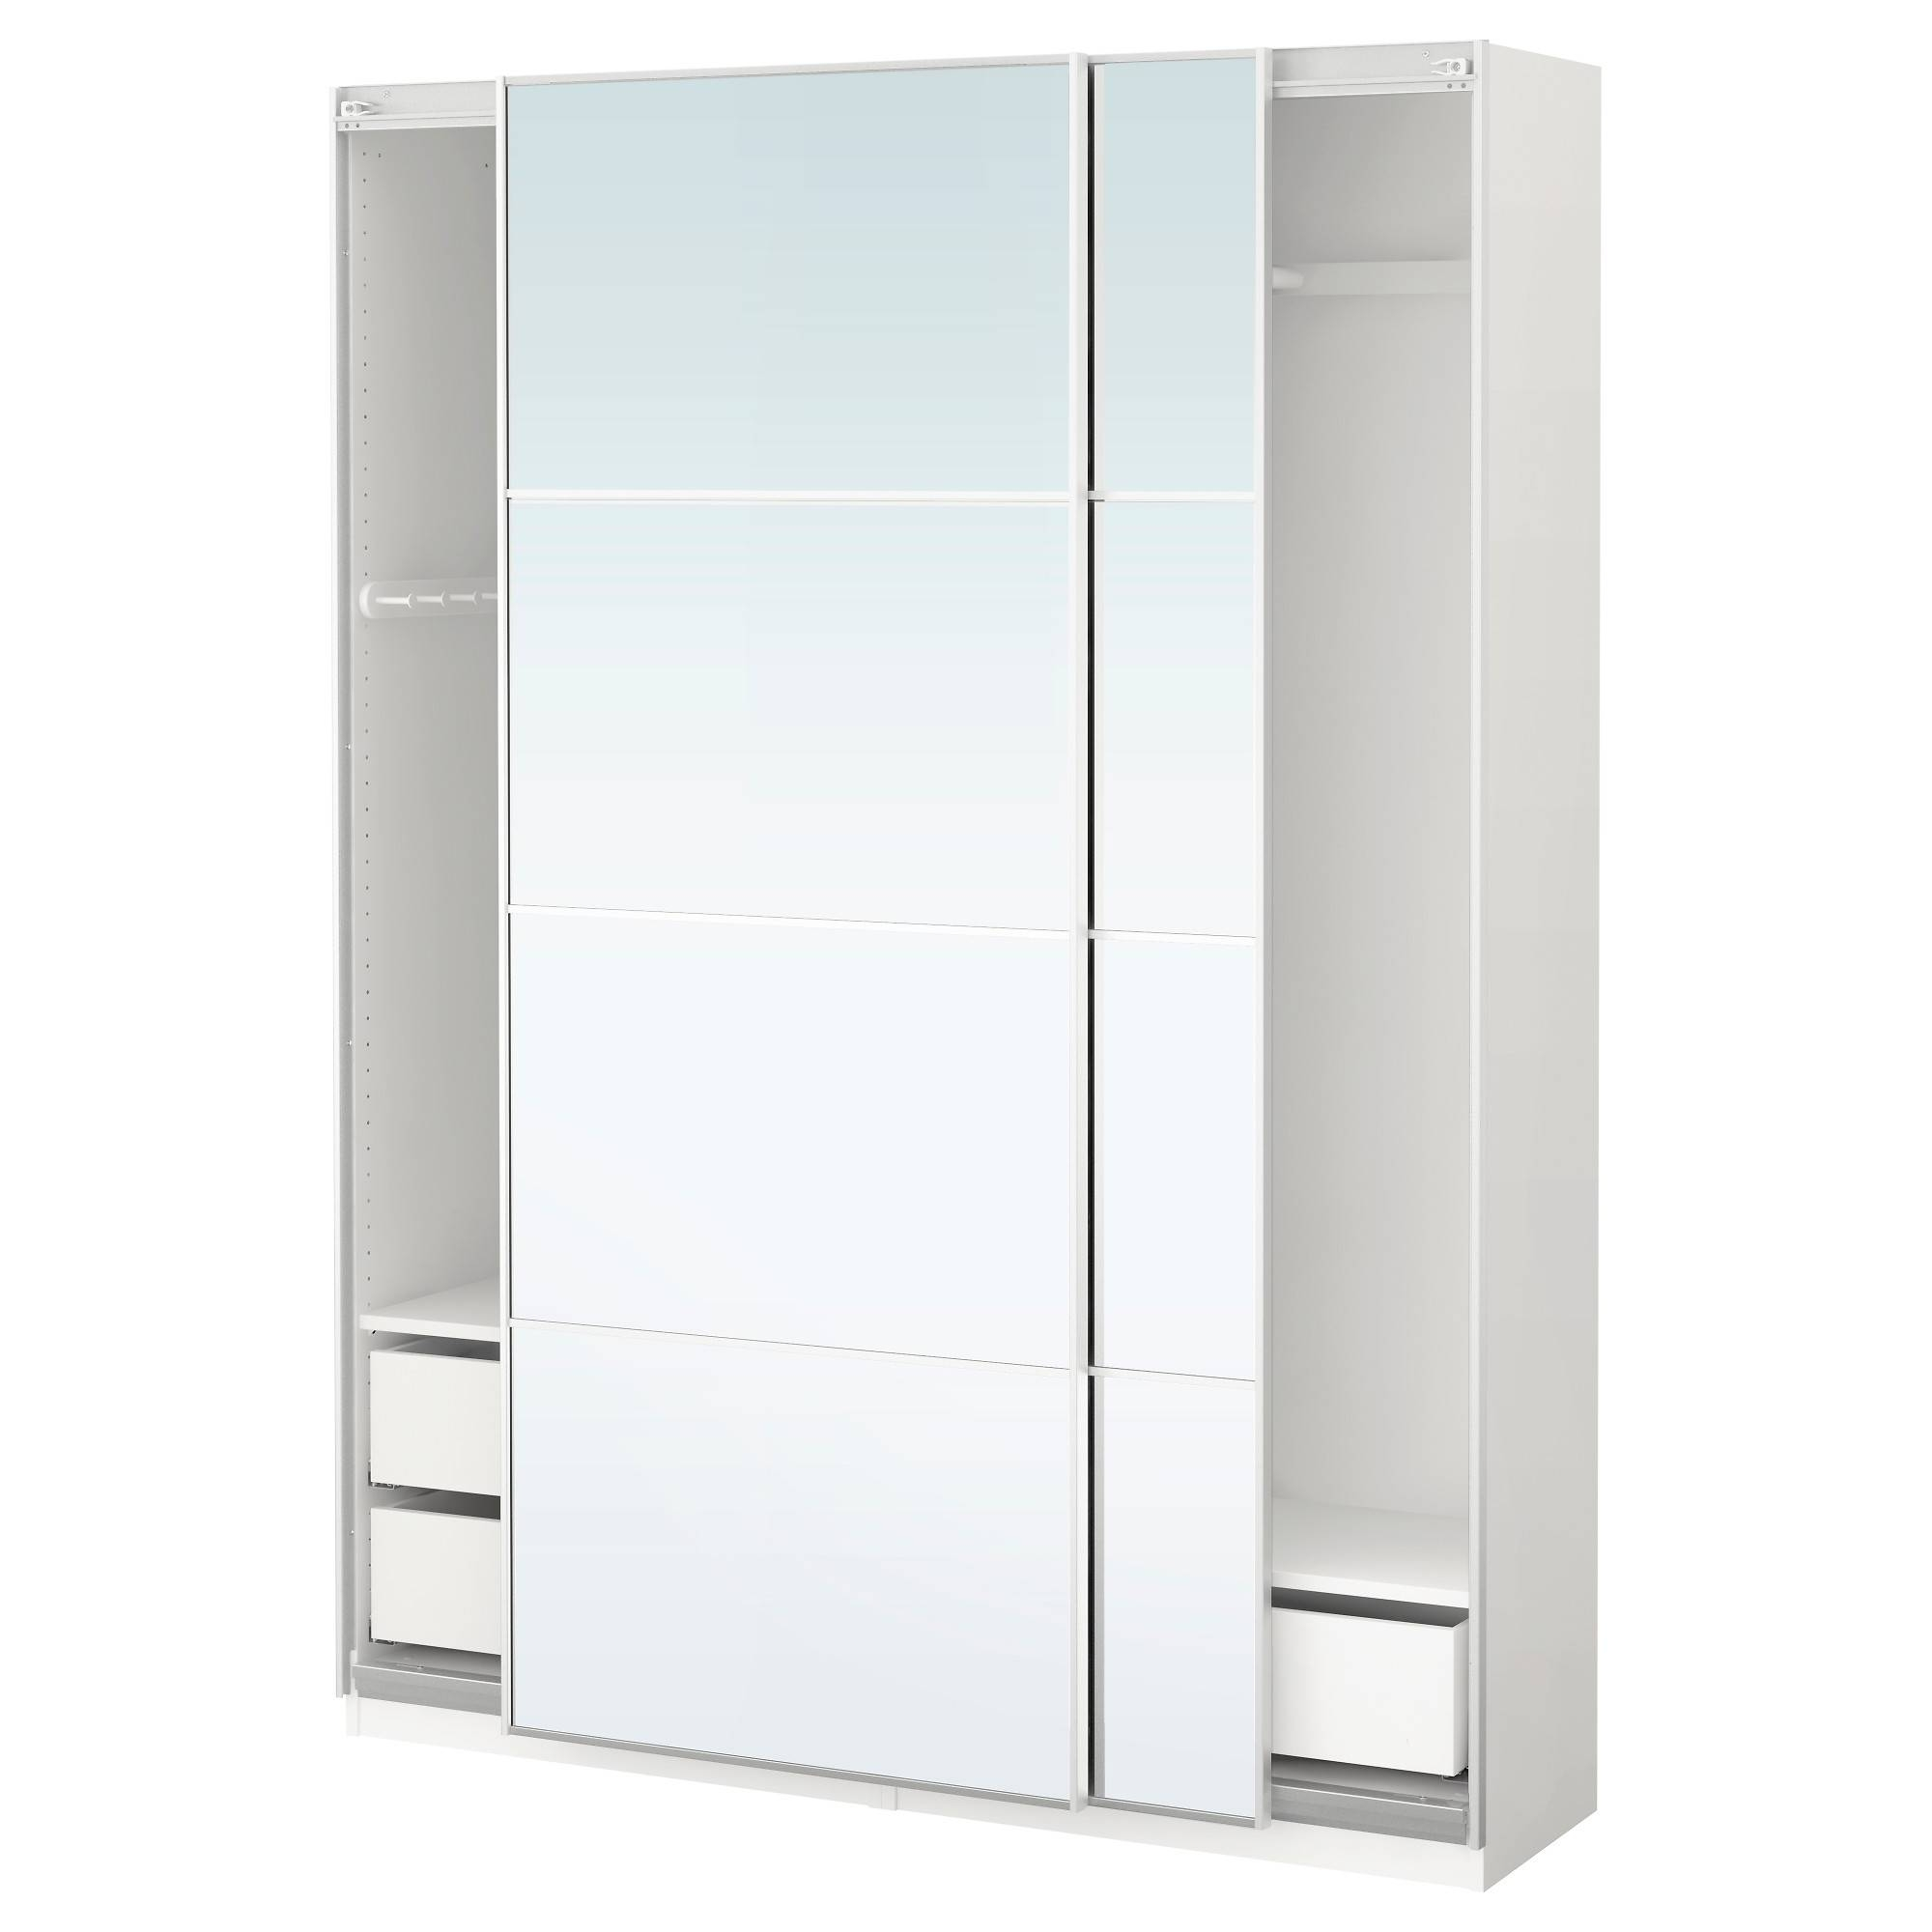 Wardrobes & Armoires – Open, Fitted, Sliding Doors & More - Ikea throughout 4 Door White Wardrobes (Image 13 of 15)